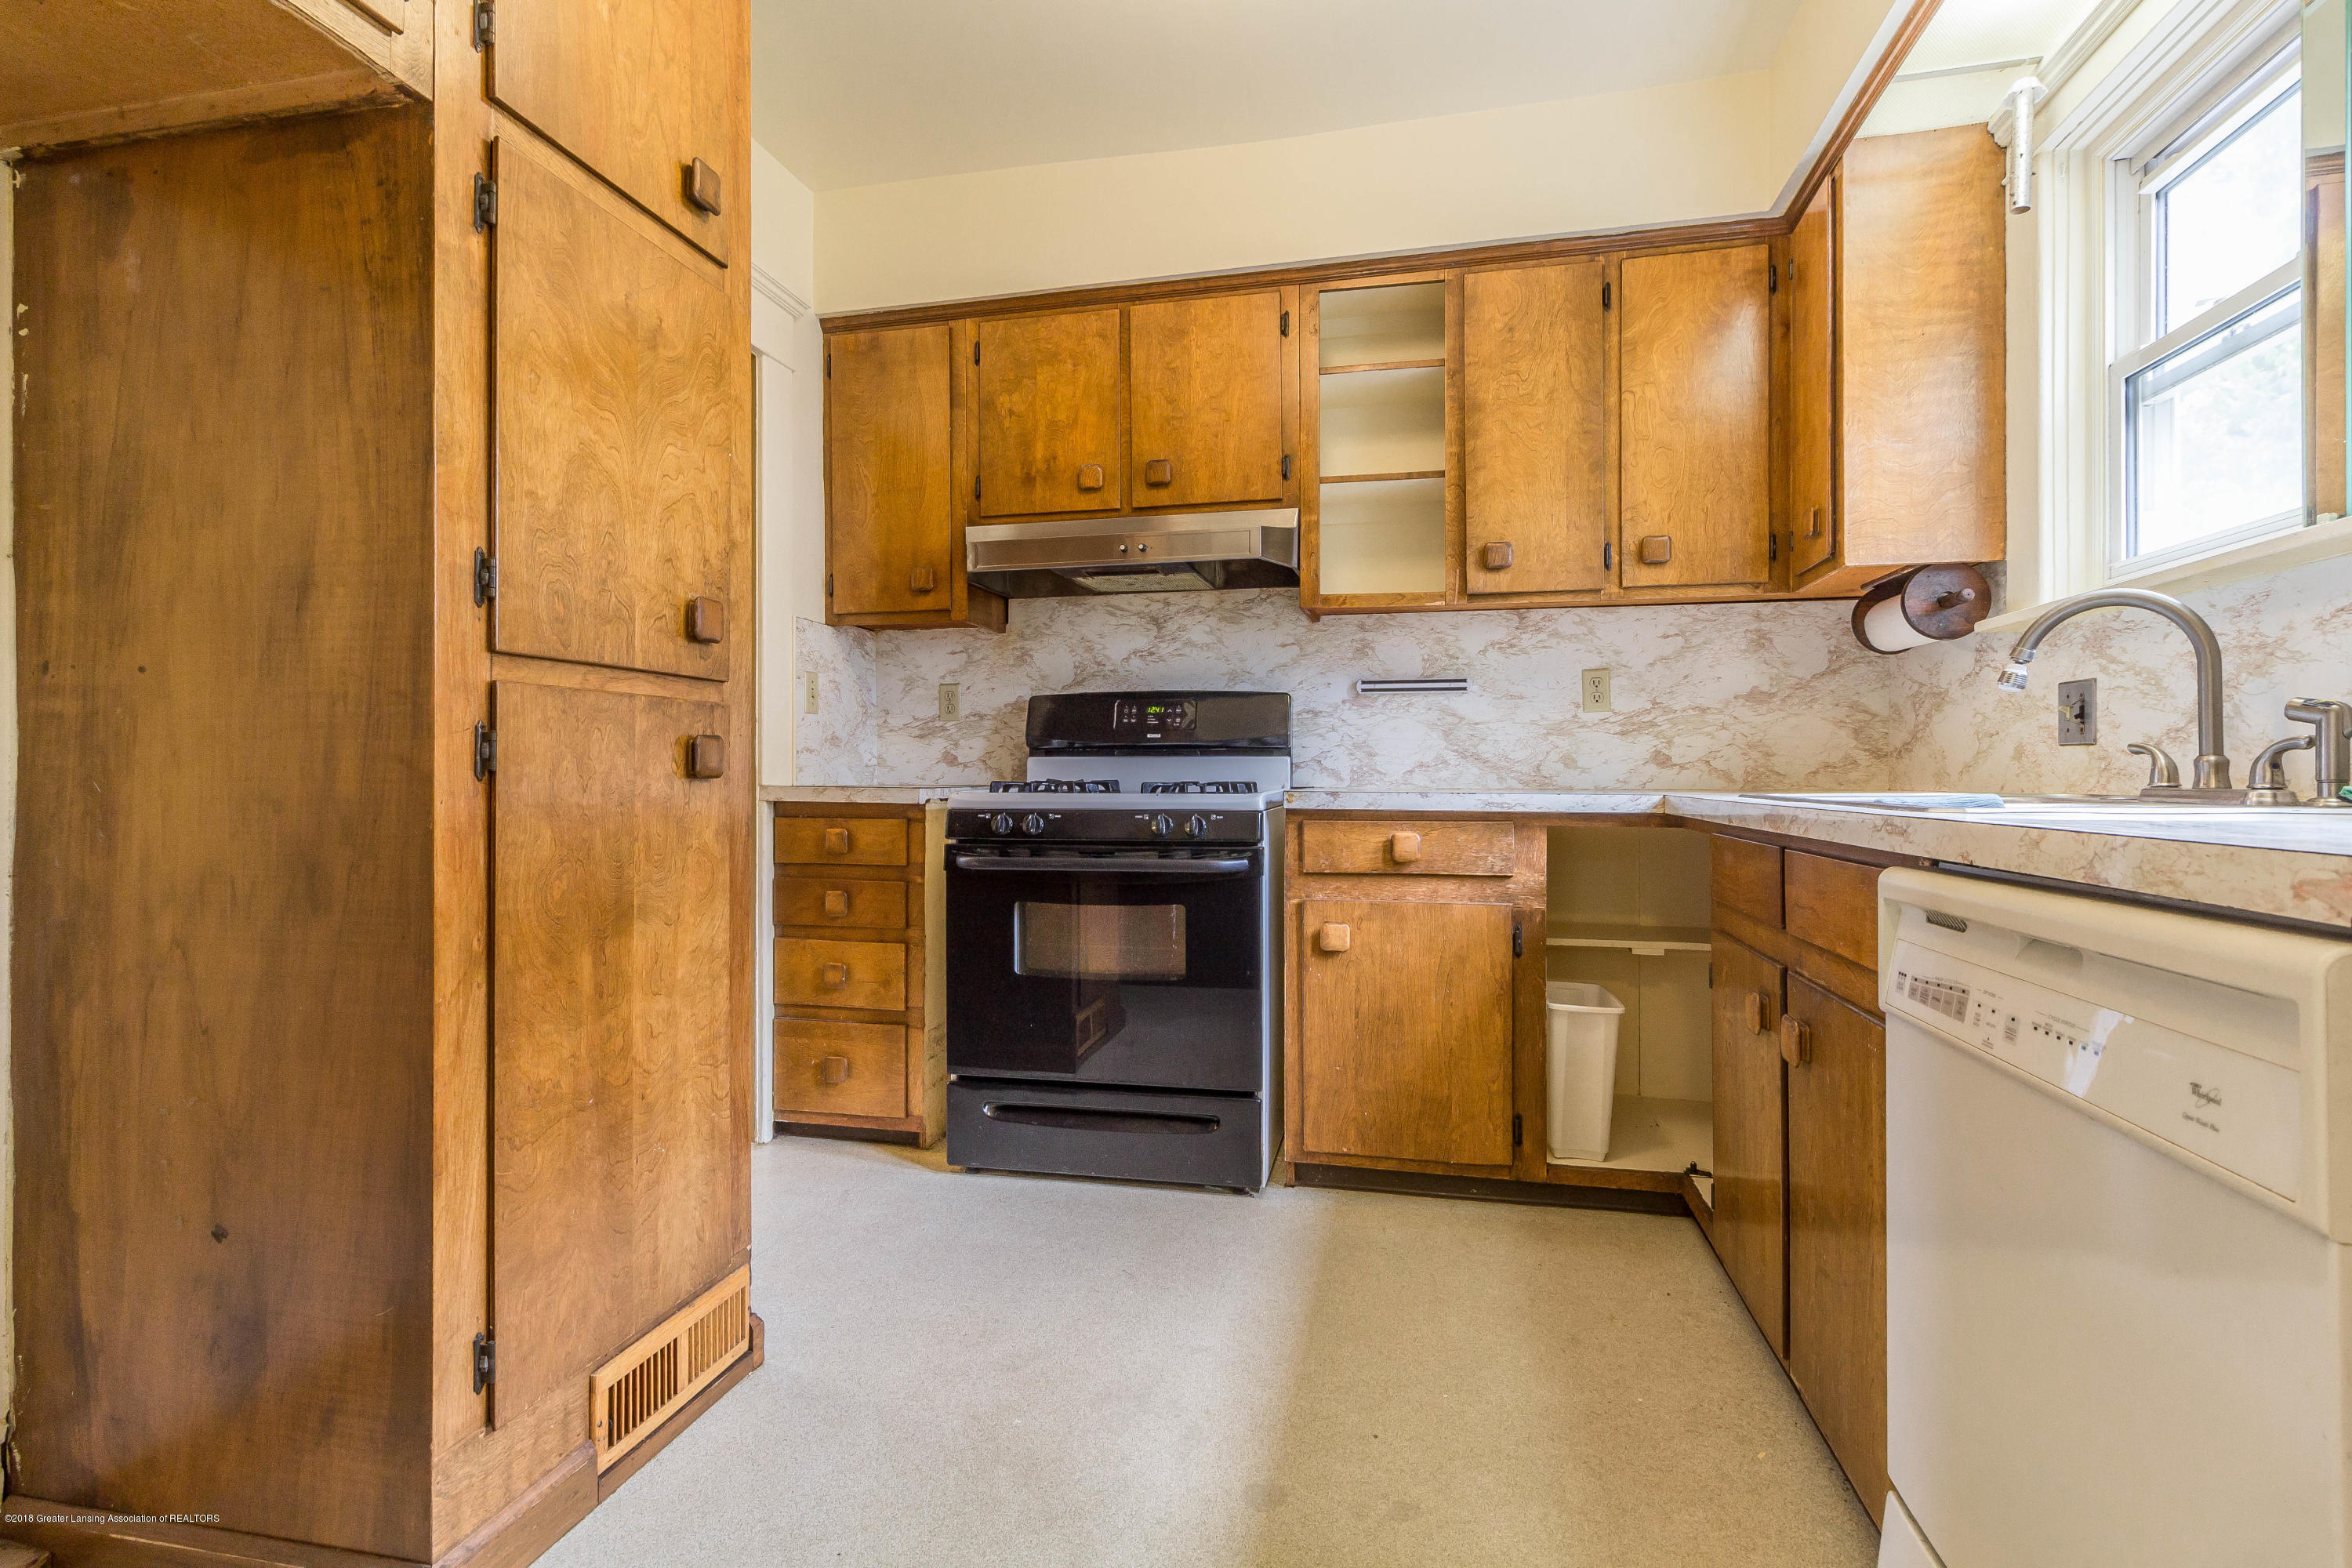 234 Shepard St - shepardkitchen2 (1 of 1) - 8